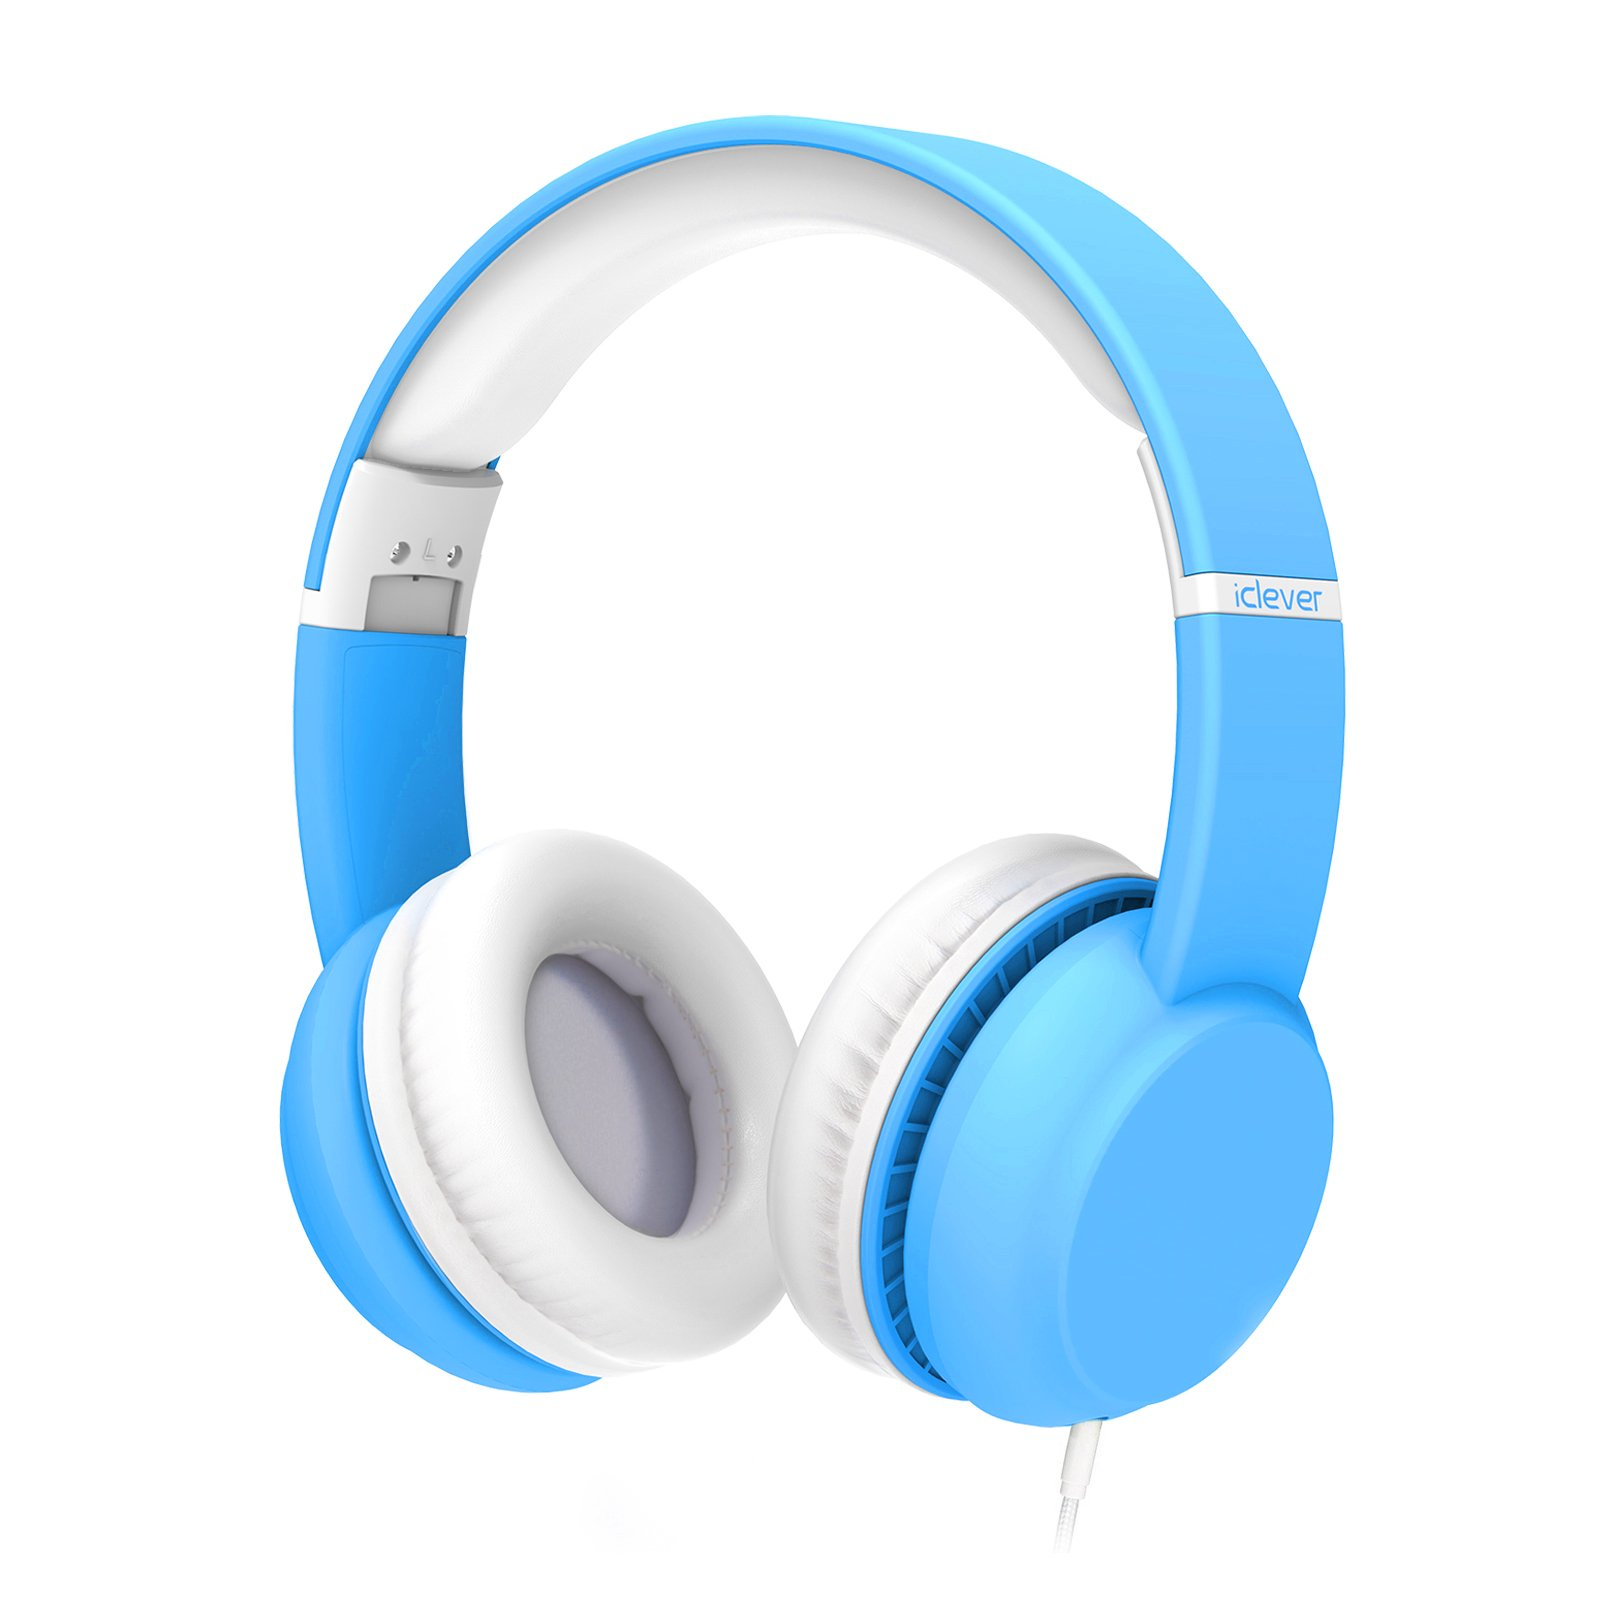 iClever Kids Headphones - Wired Headphones for Kids, Stereo Sound, Adjustable Metal Headband, Foldable & Portable, Untangled Wires, 94dB Volume Limiting - Childrens Headphones Over Ear, Blue